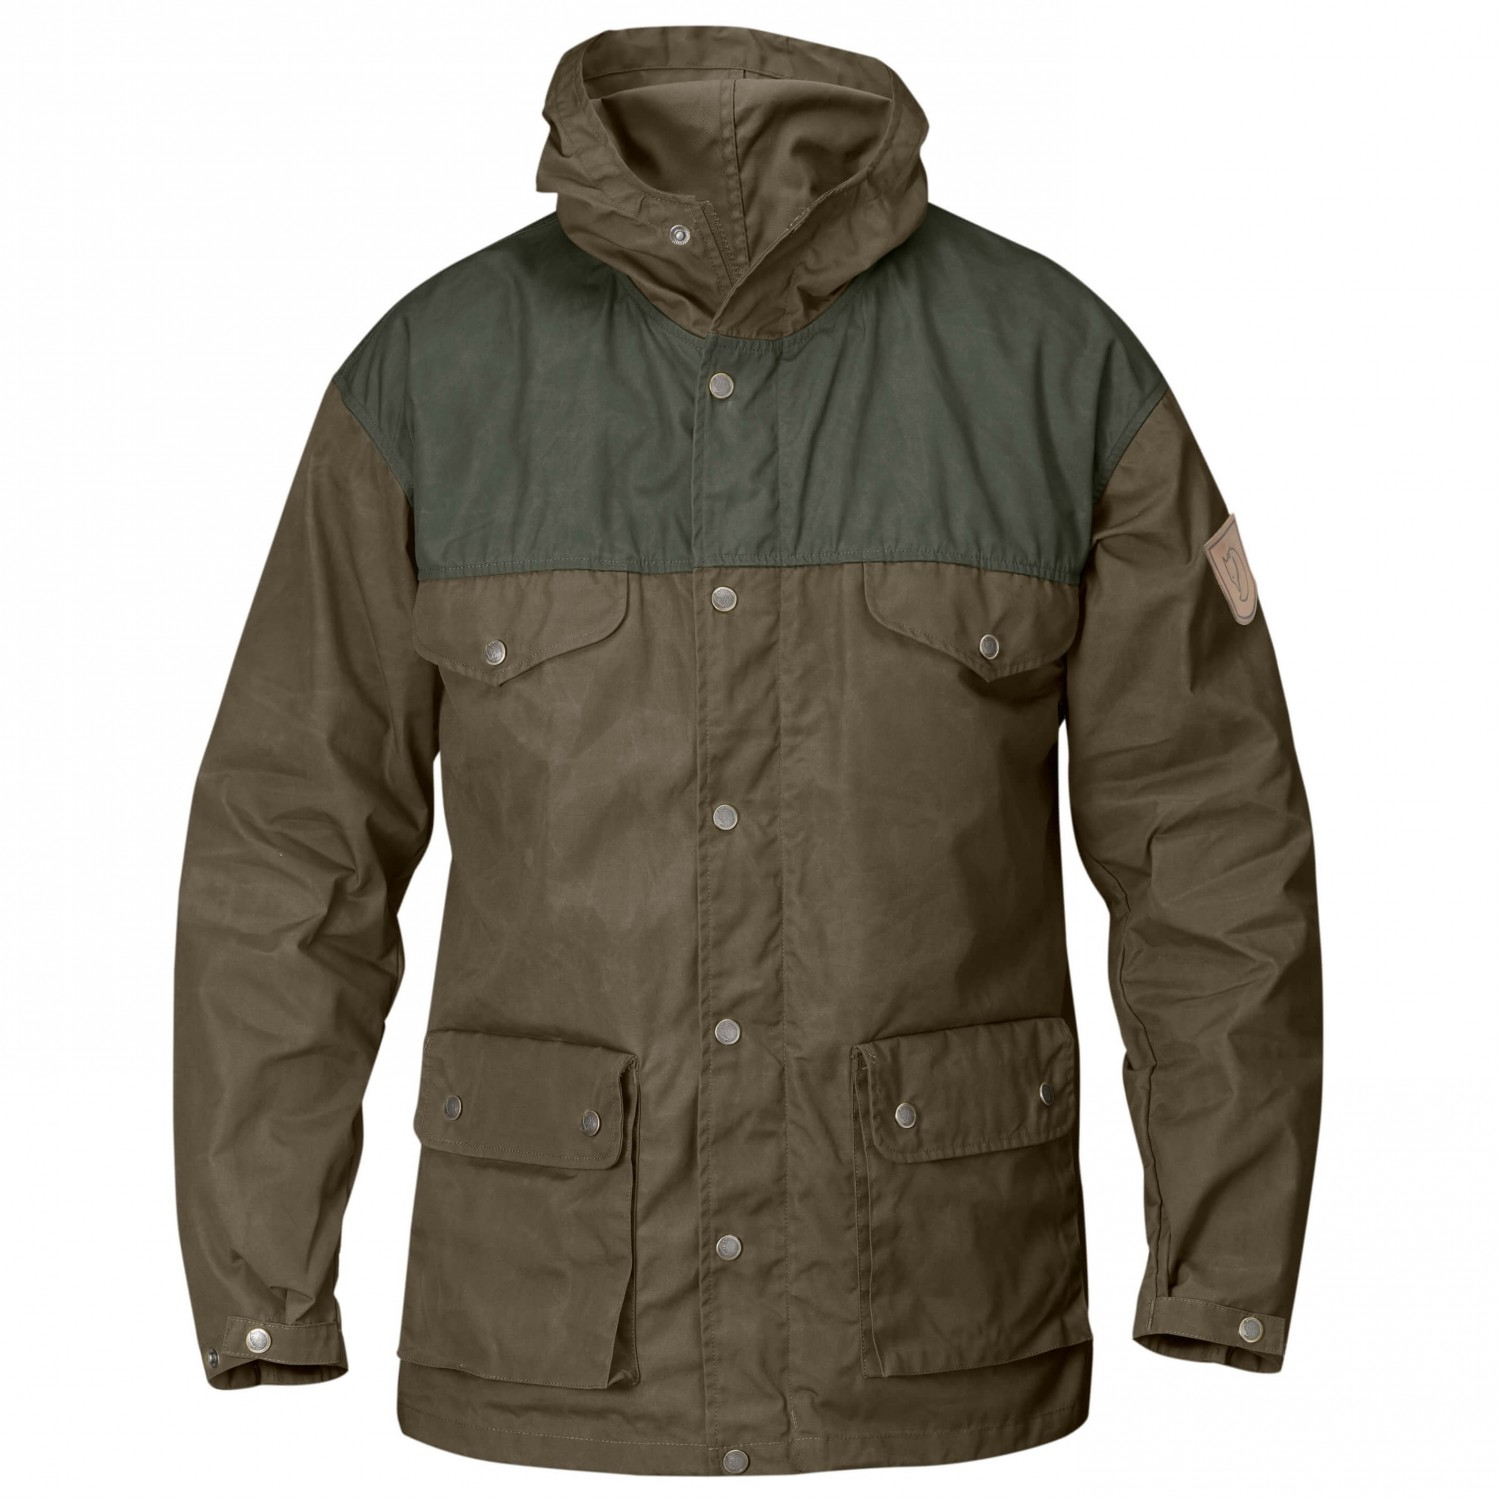 You do not need to make more things to make more money, you can grow revenue by re-newing existing product. #wear North Face example: repair old, returned, warranty items and re-sell. AM - 2 Oct 1 Retweet 3 Likes 1 reply 1 retweet 3 likes. Reply. 1. Retweet. 1.